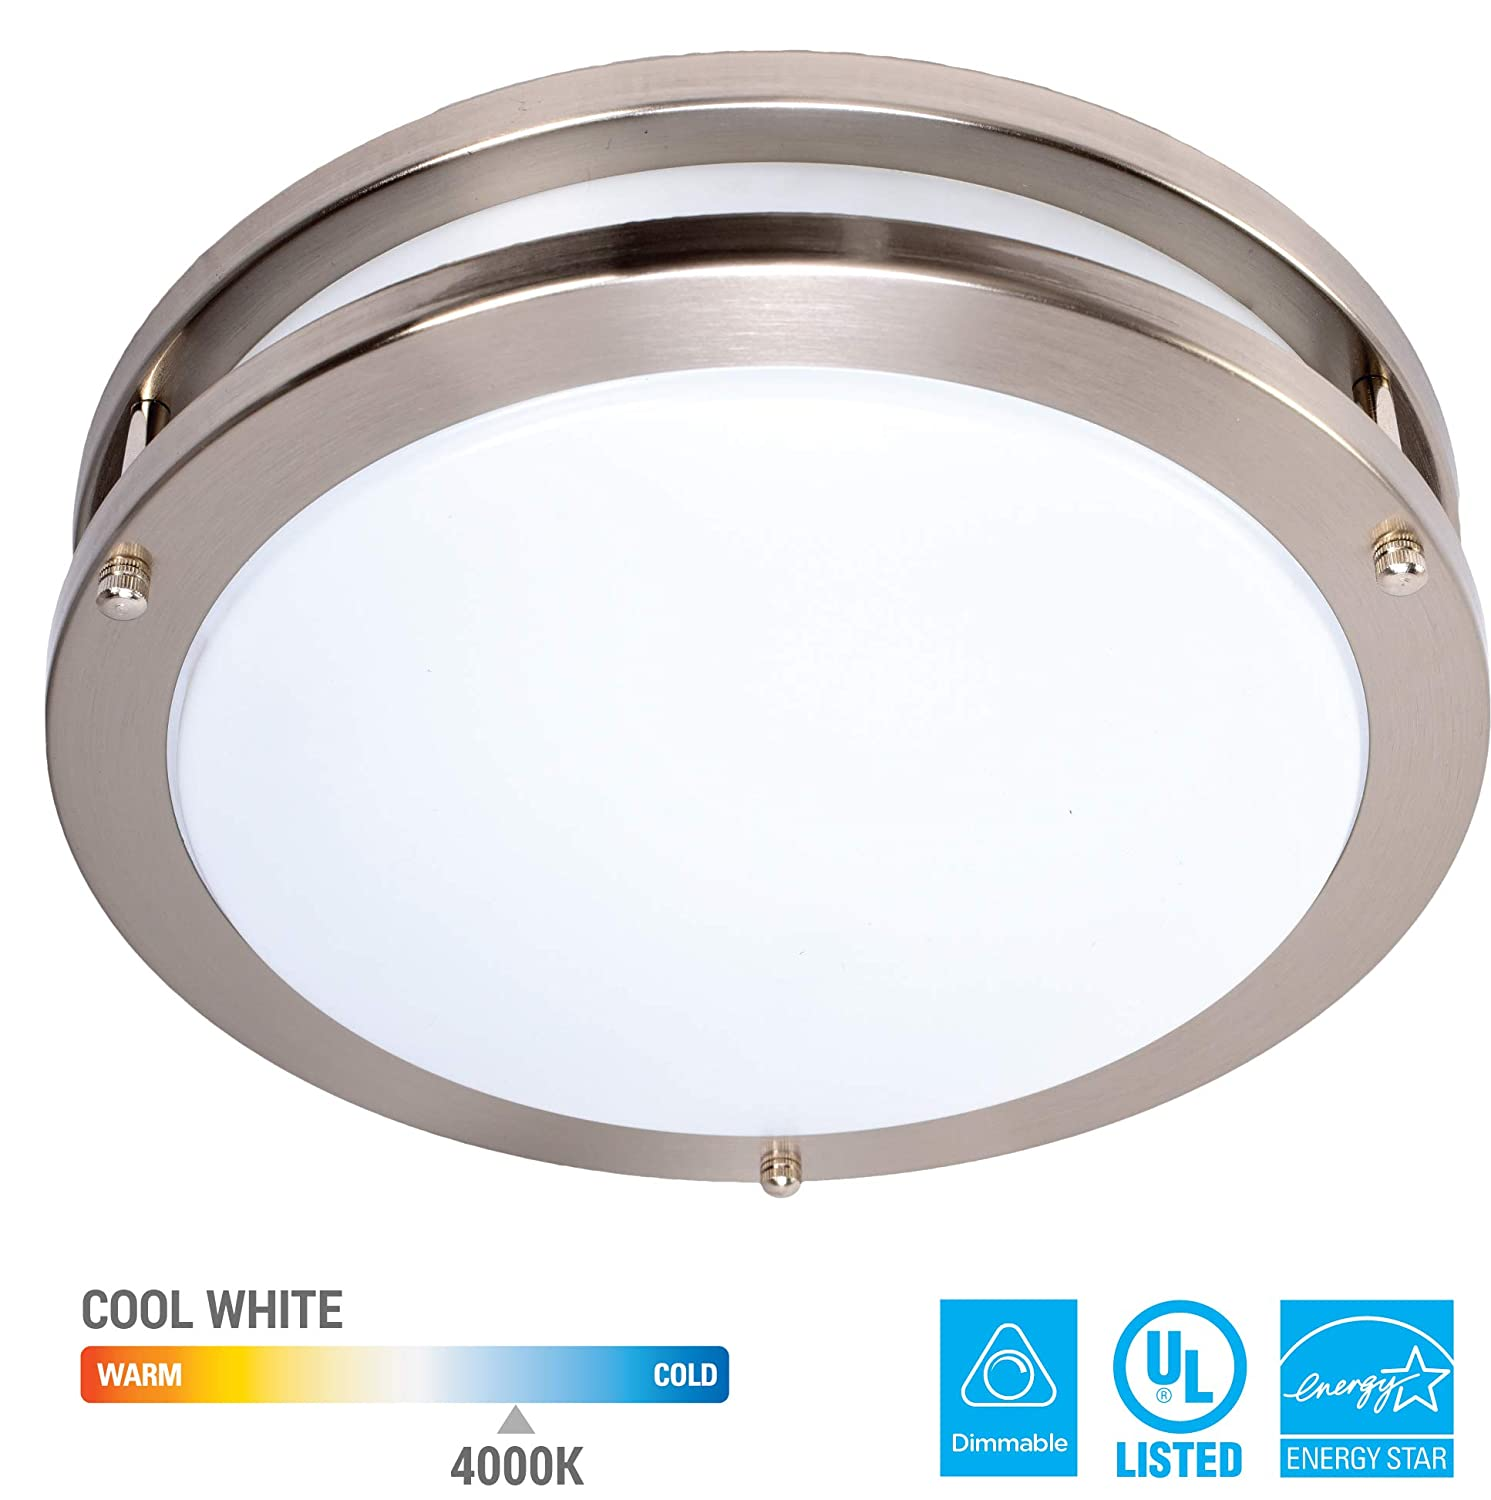 KOR 16-Inch LED Ceiling Light Fixture - 24W, 1700lm, 4000K (Cool White Color) Dimmable Light Energy Efficient and Easy Installation - Ideal for Living Room Bedroom Kitchen Hallway